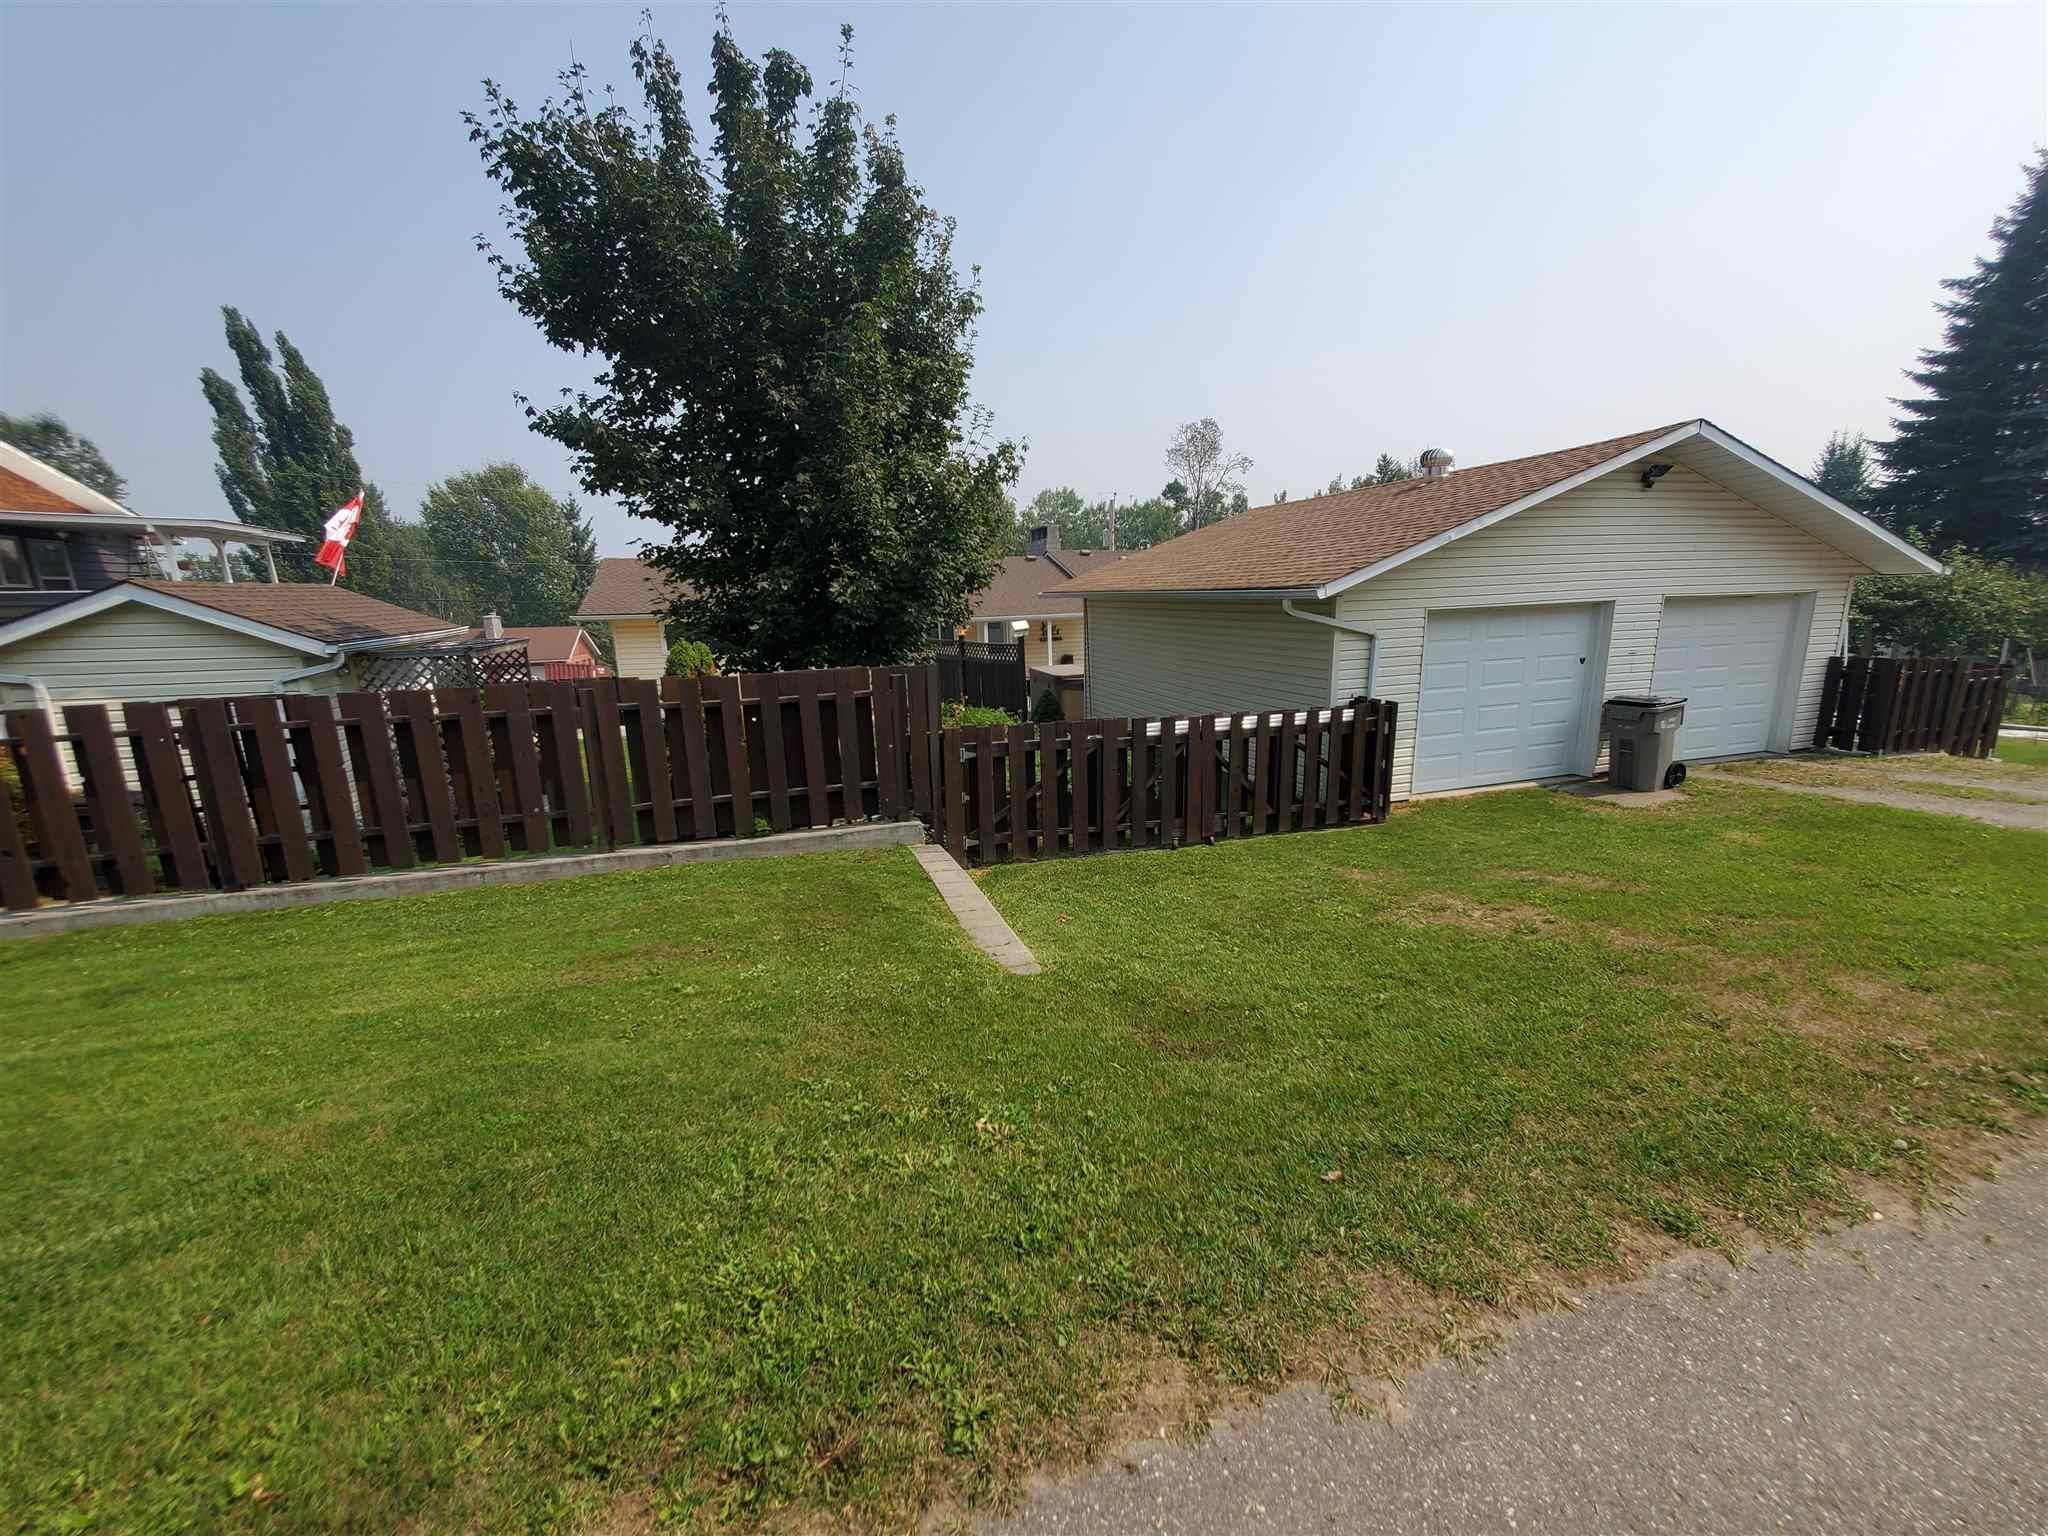 Main Photo: 427 ALLARD Street in Quesnel: Quesnel - Town House for sale (Quesnel (Zone 28))  : MLS®# R2606906